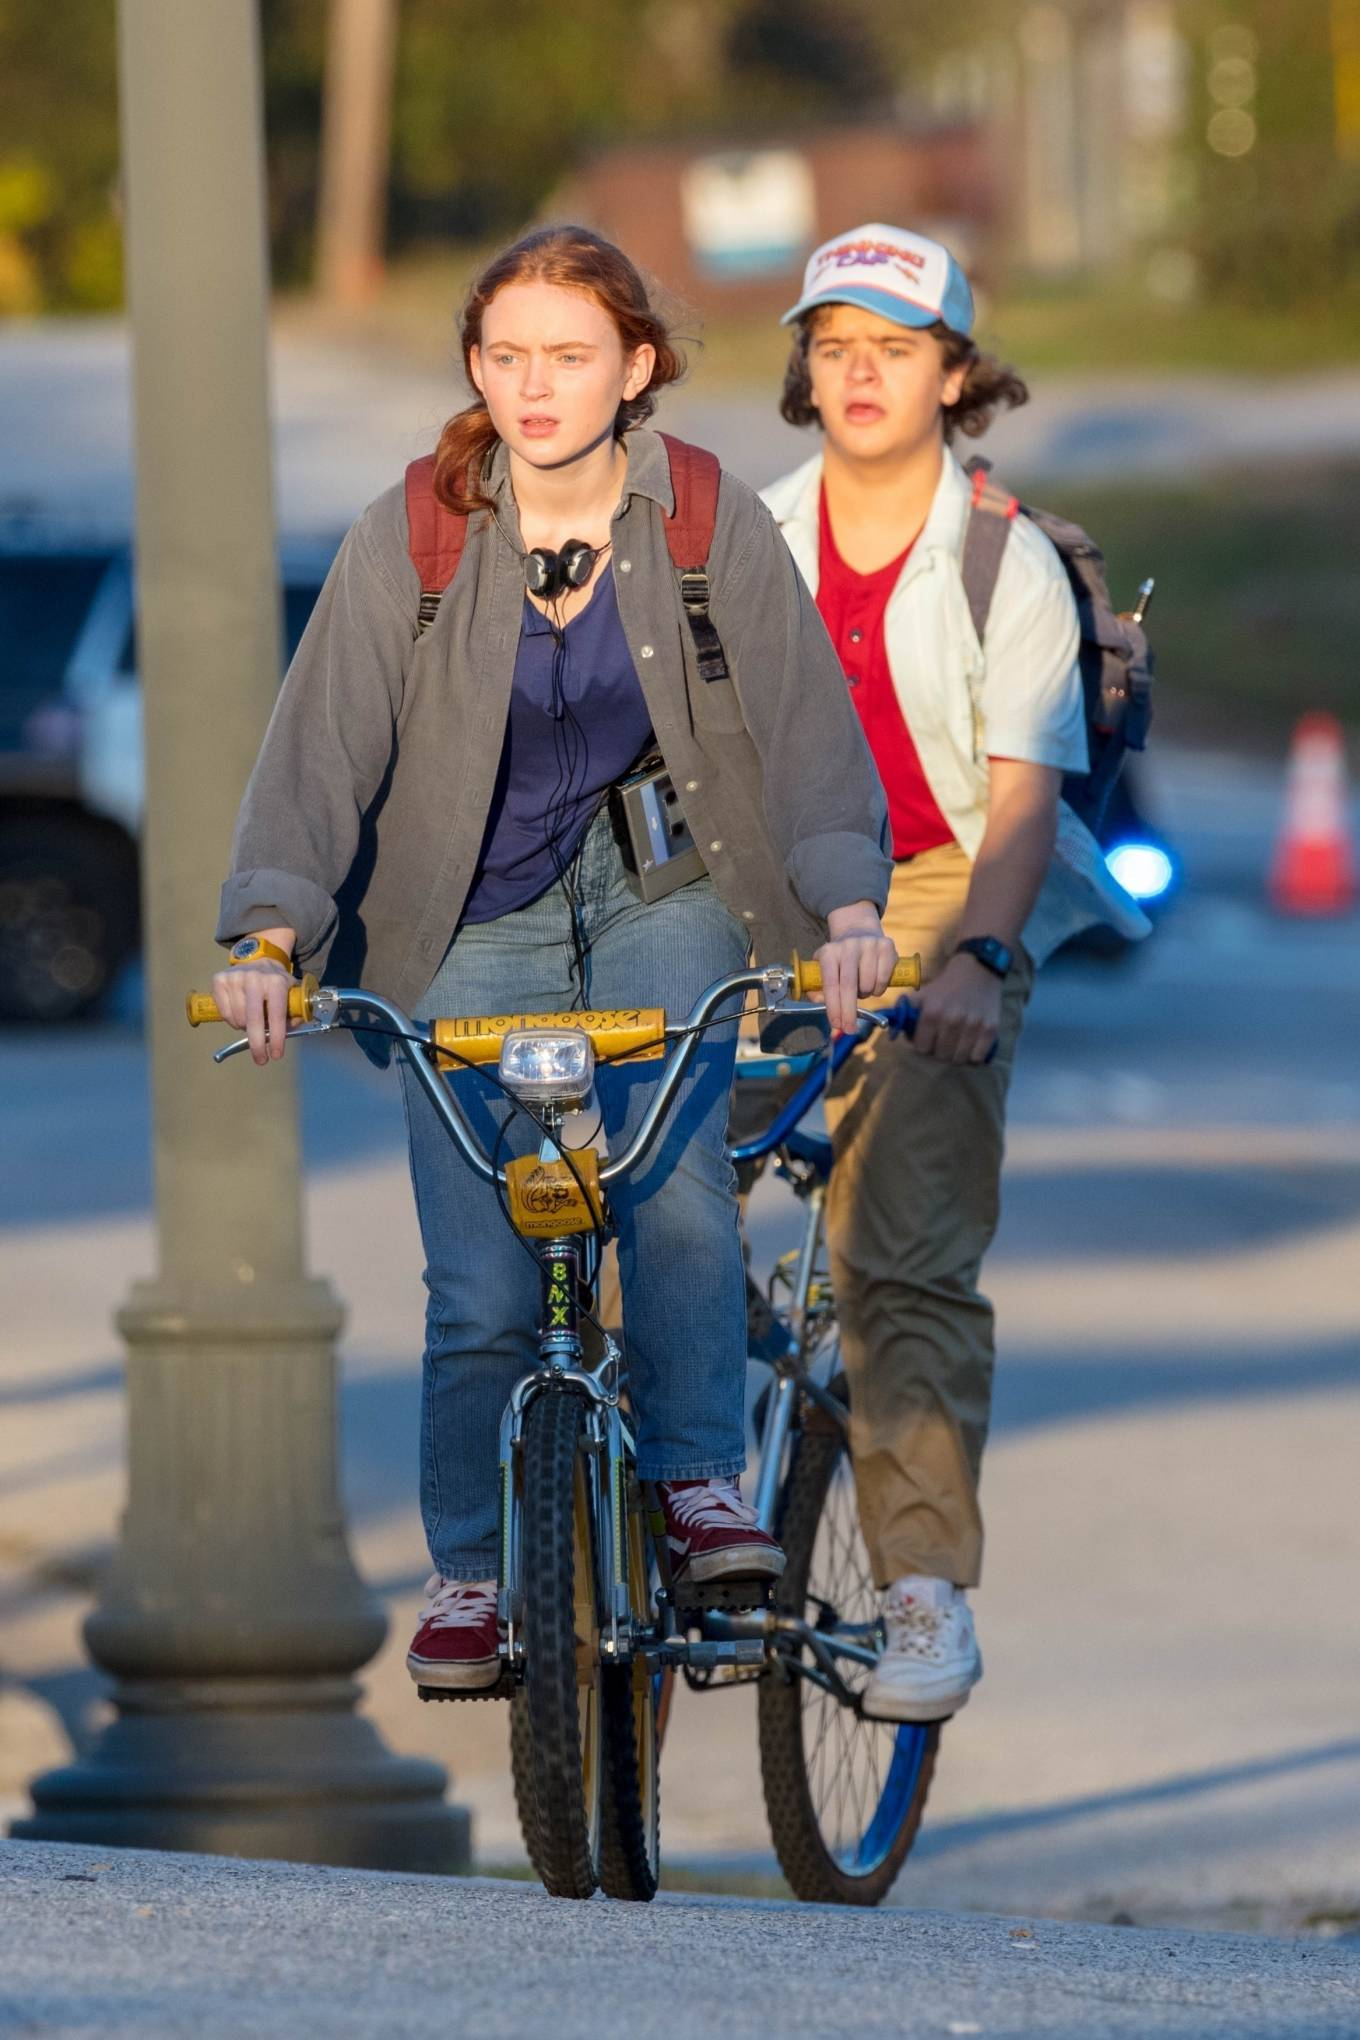 Gaten Matarazzo and Sadie Sink - Golden hour scene for 'Stranger Things' Season 4 in Atlanta